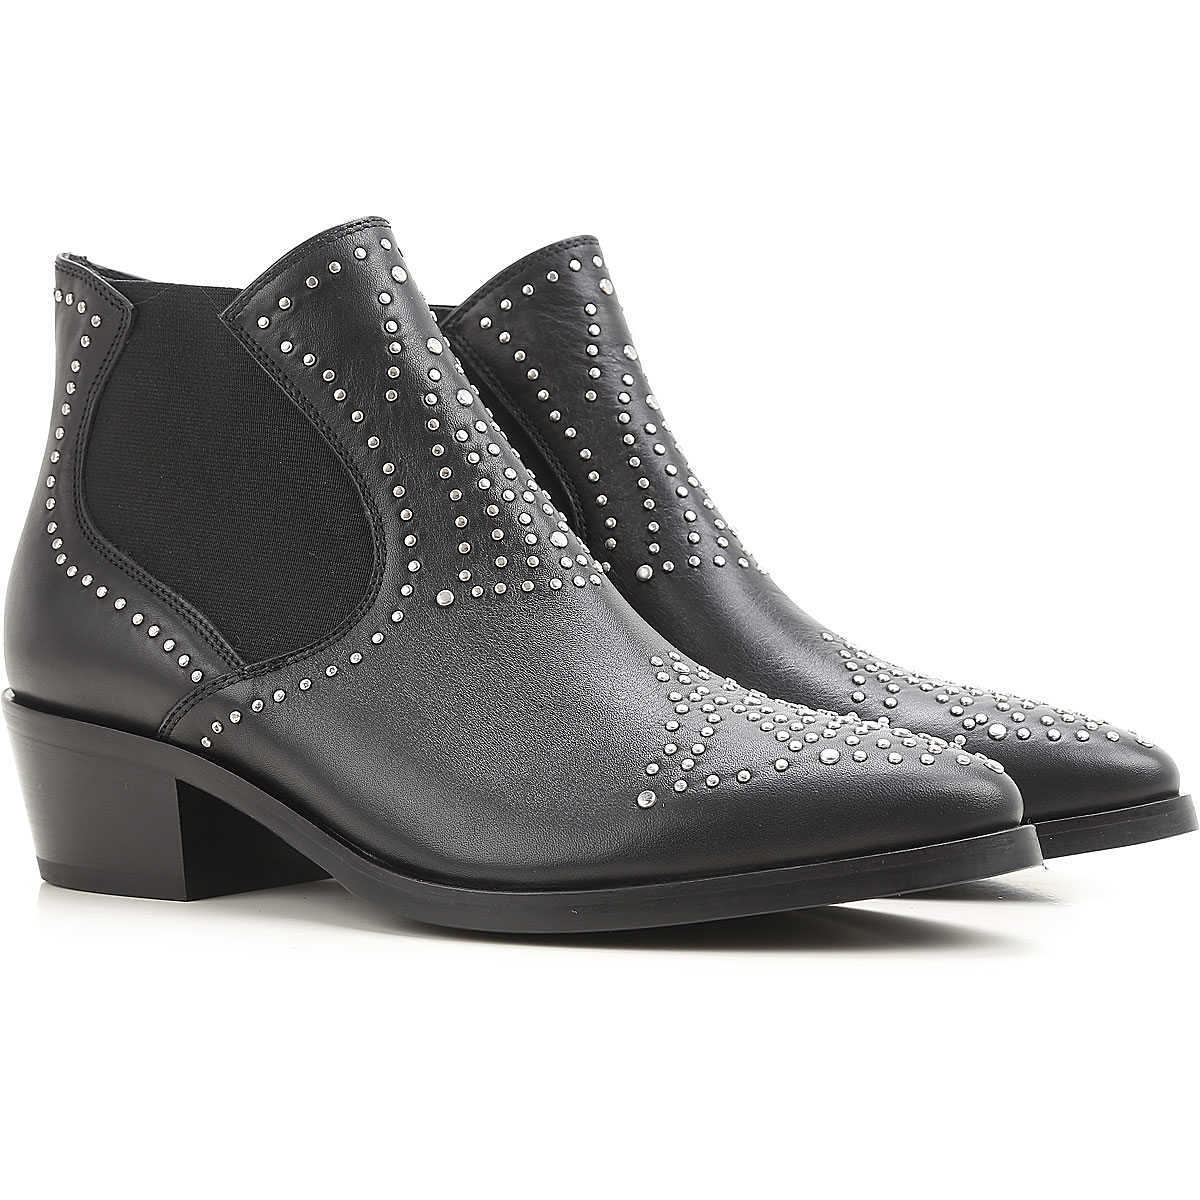 Janet & Janet Boots for Women 4.5 7.5 Booties On Sale UK - GOOFASH